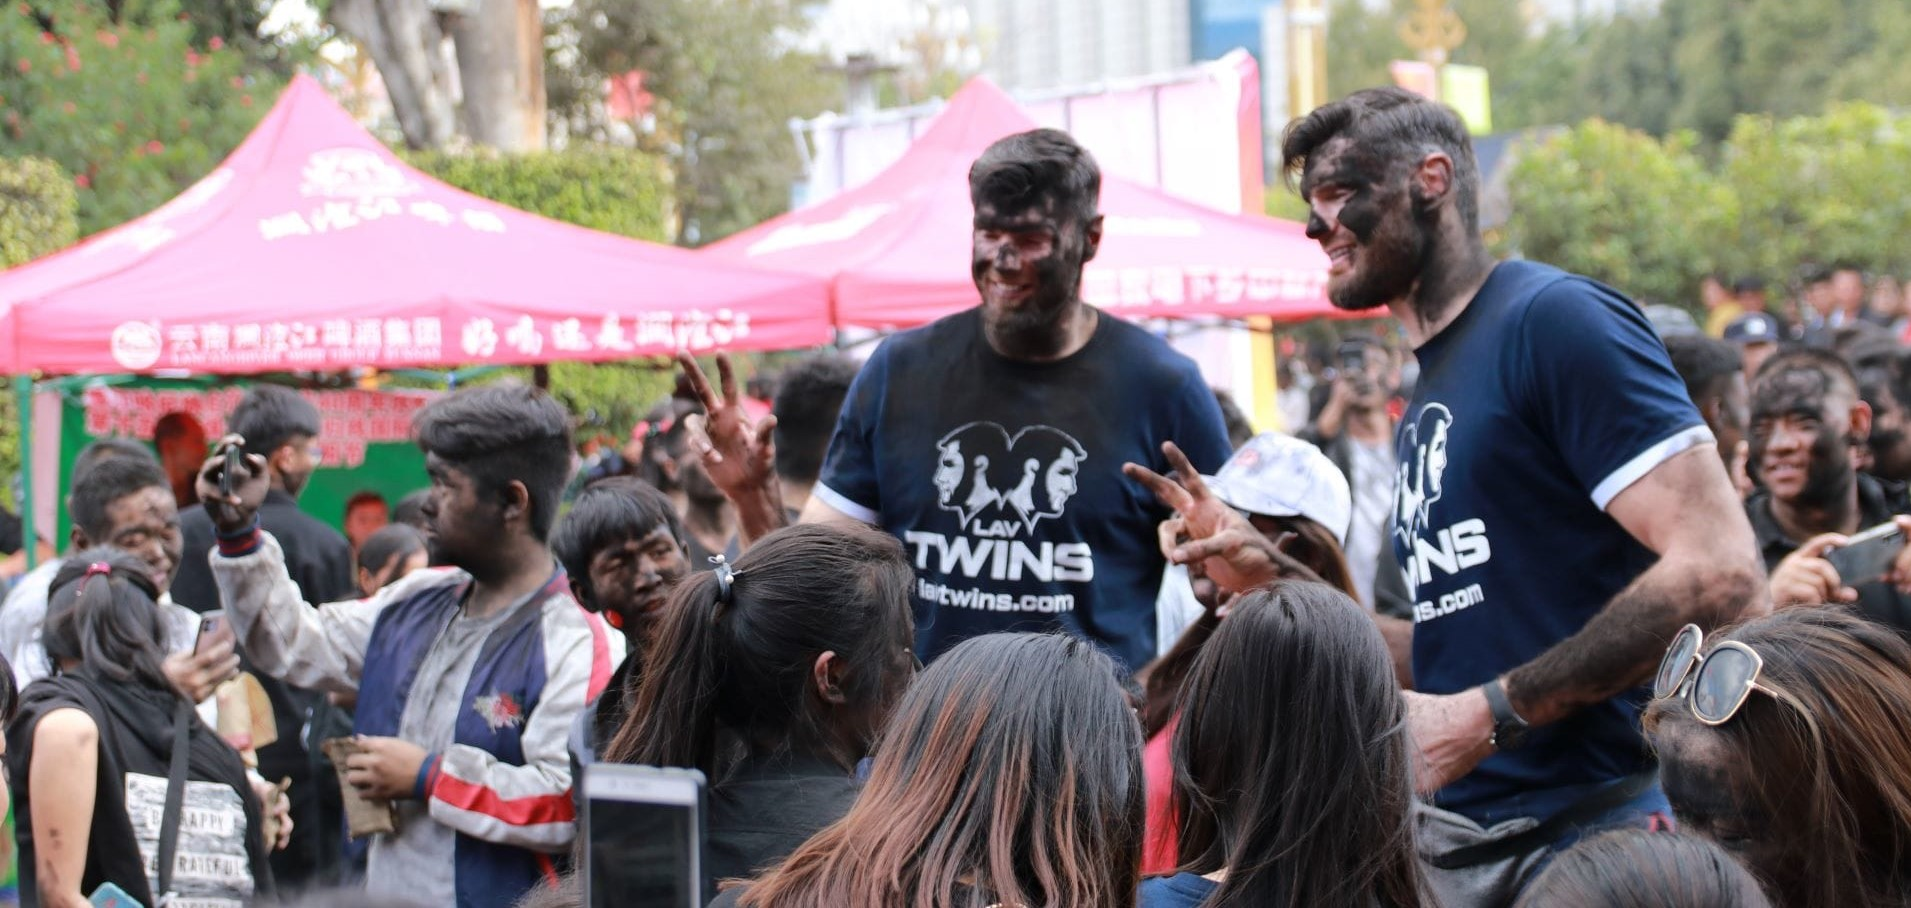 BLACKFACE PARTY IN CHINA: A SURPRISING TRADITION